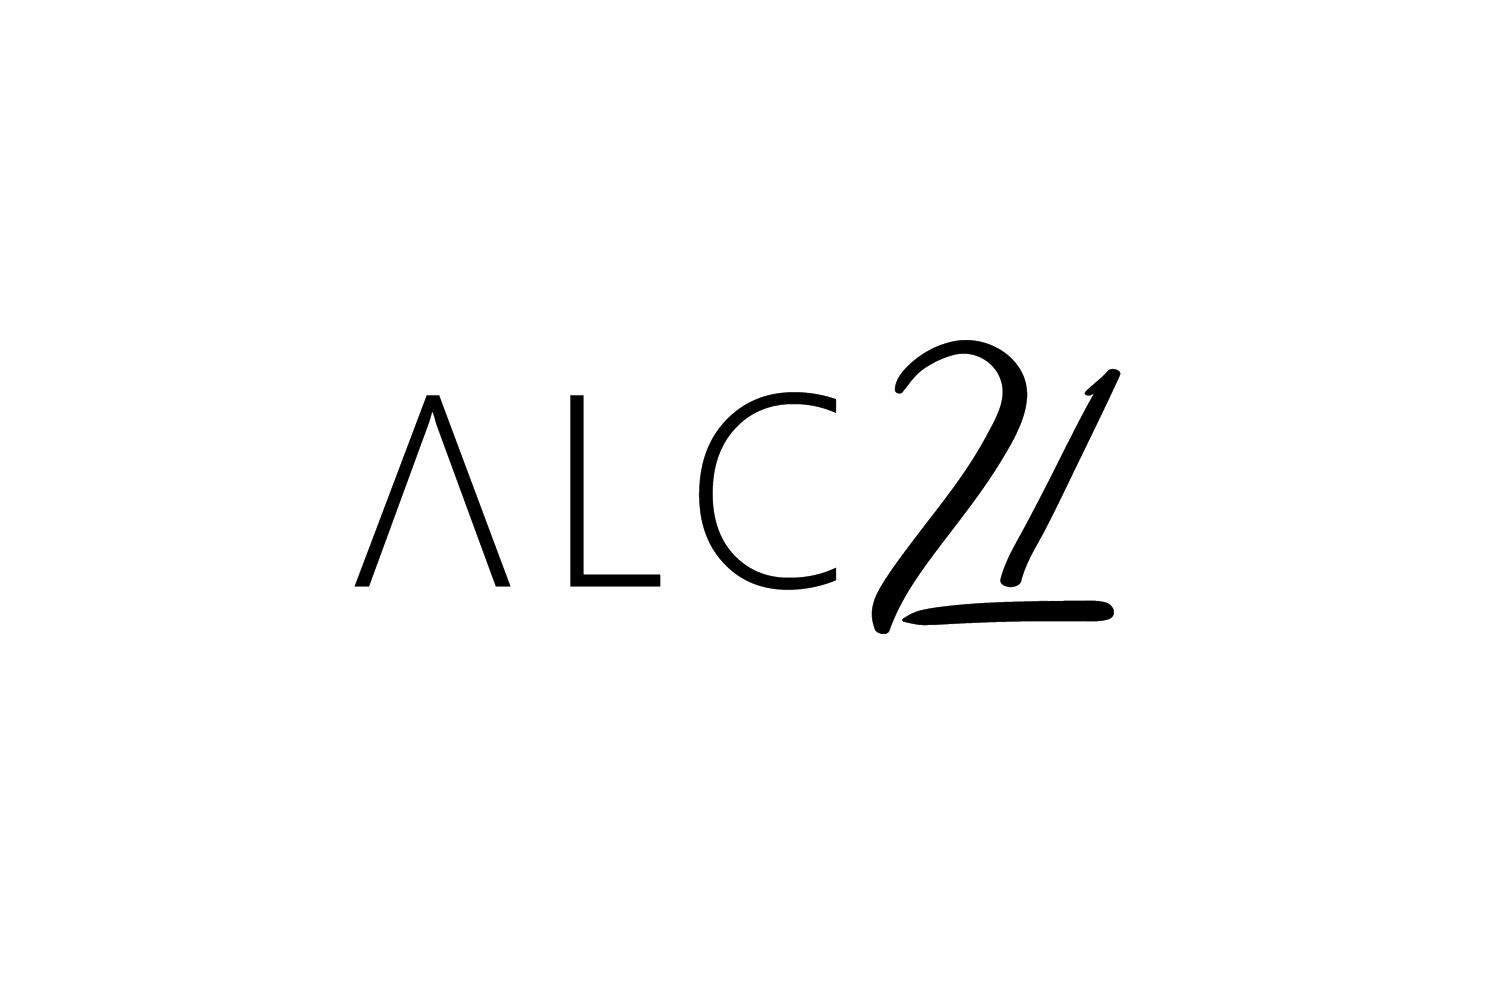 ALC21 - Leading Brand Marketing Agency Based In Toronto